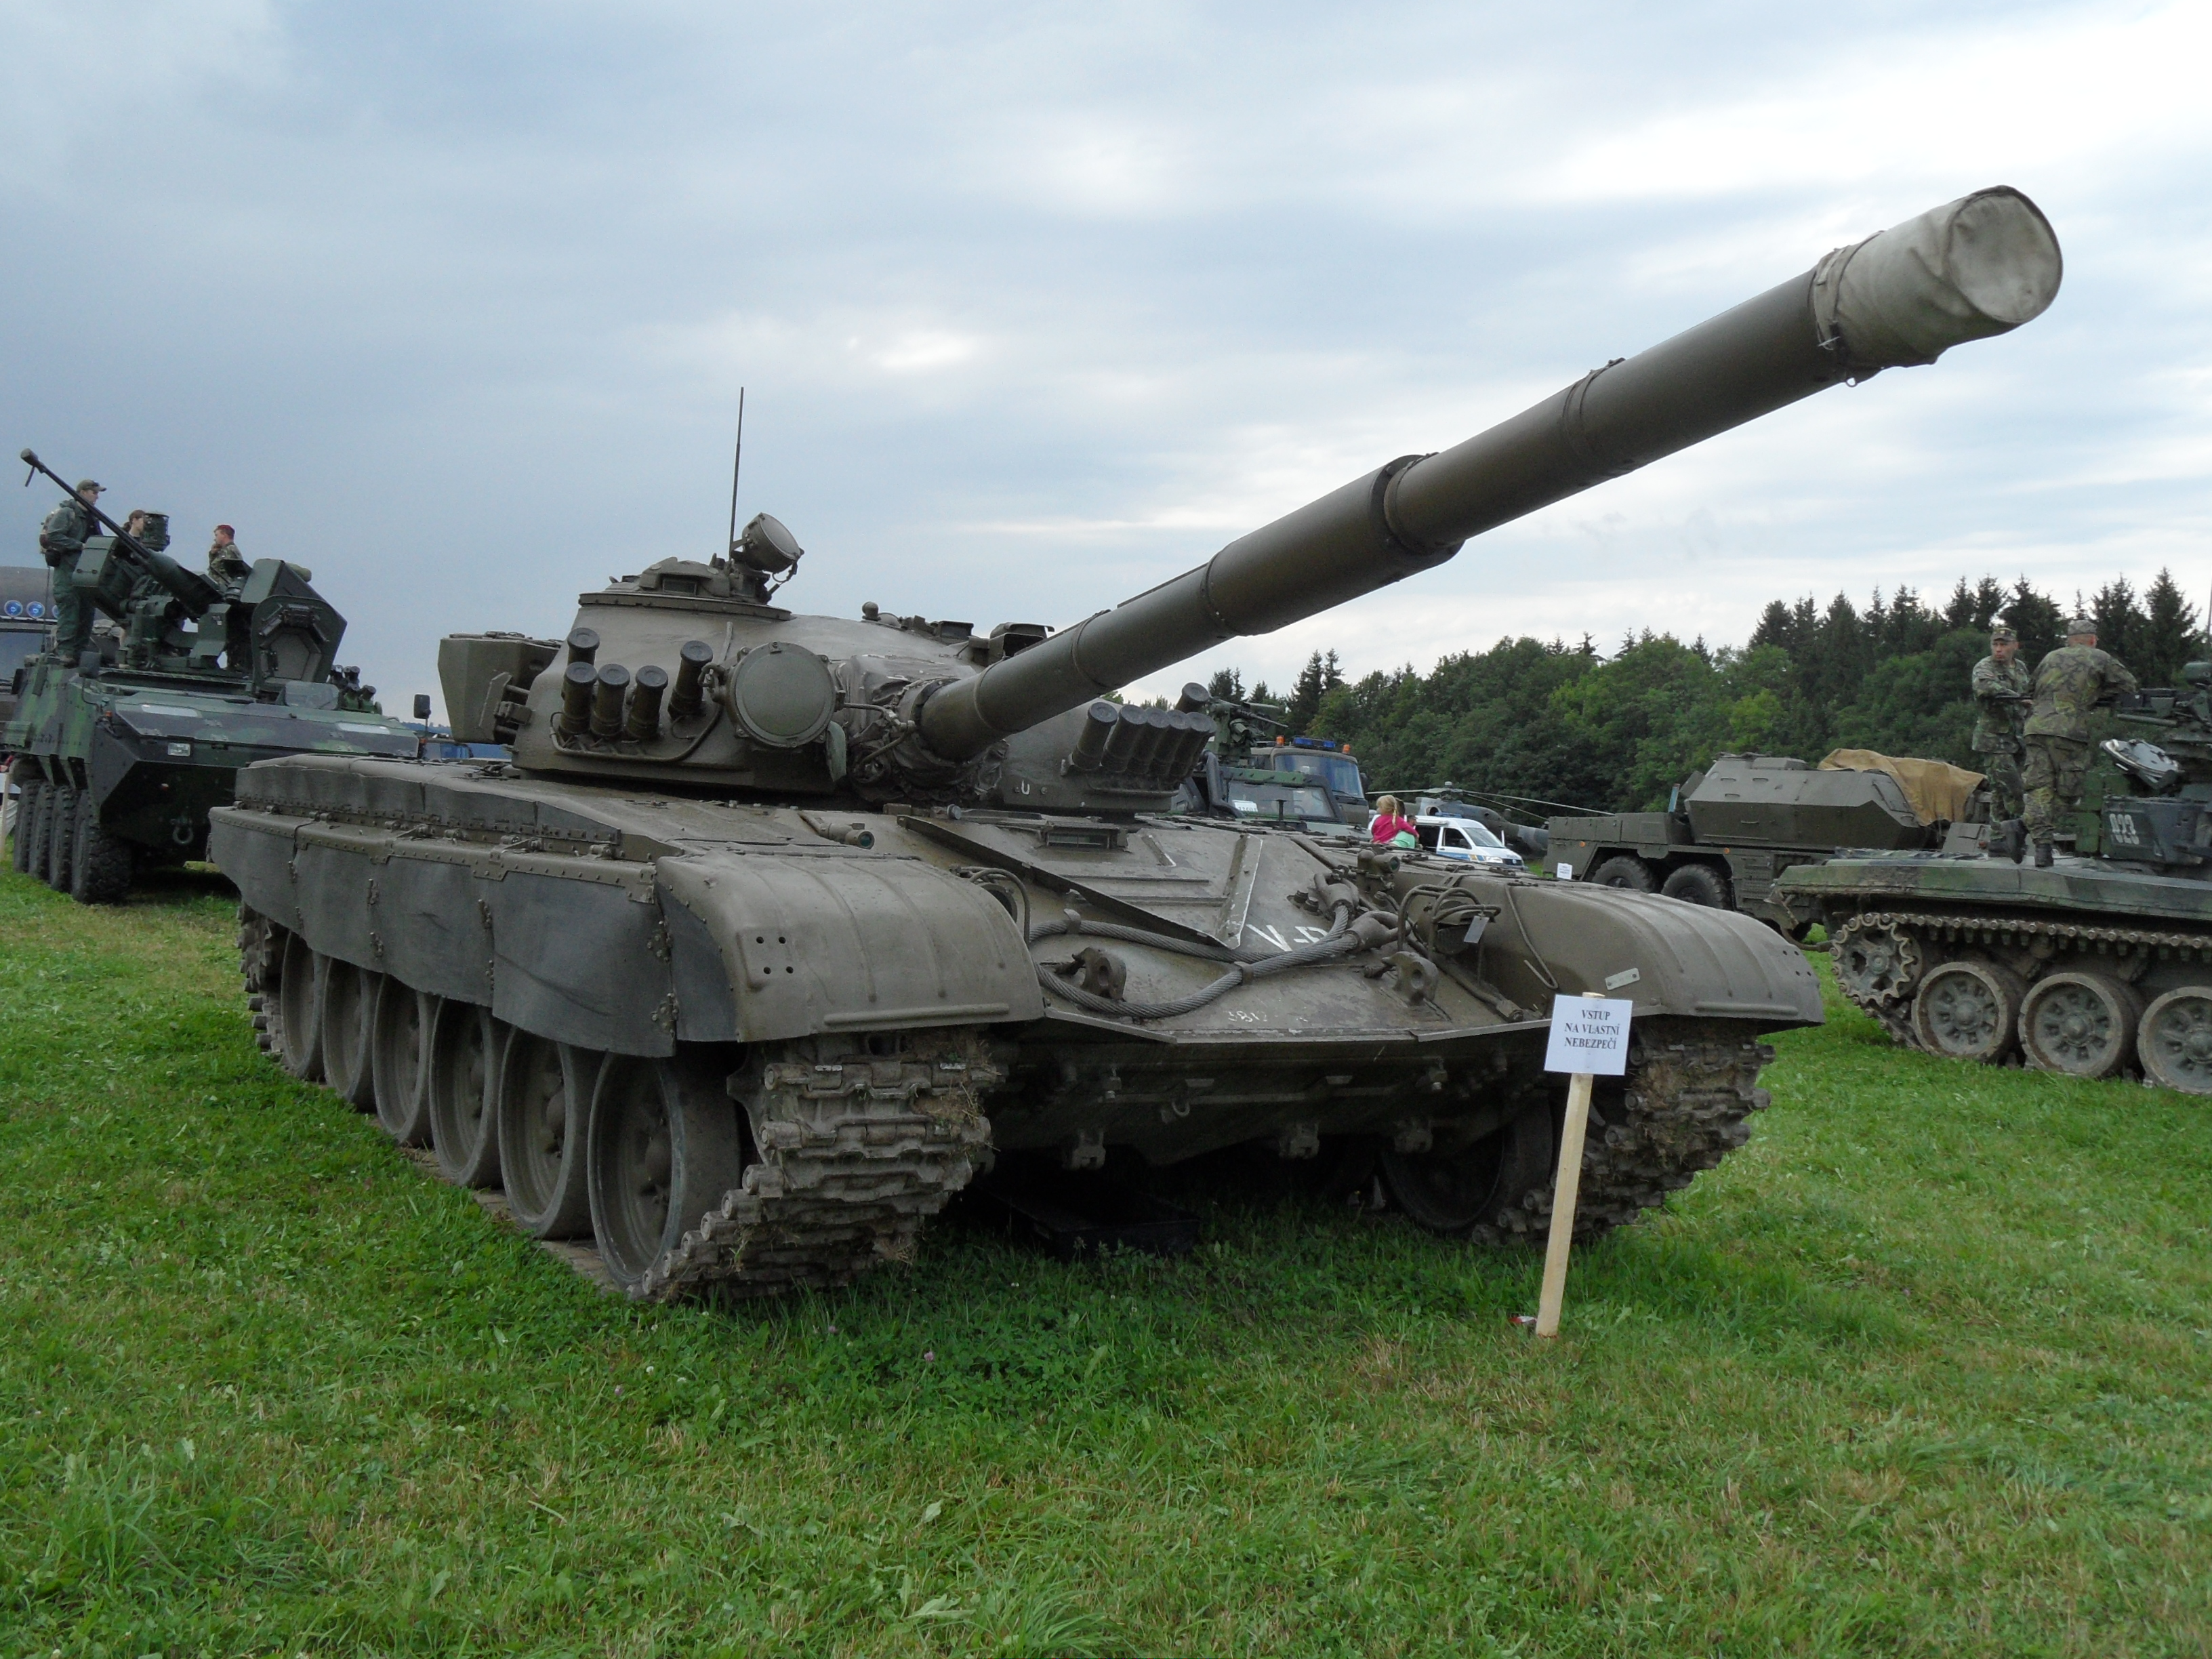 A T-72 tank. The PT-91 is an upgraded version of the T-72.